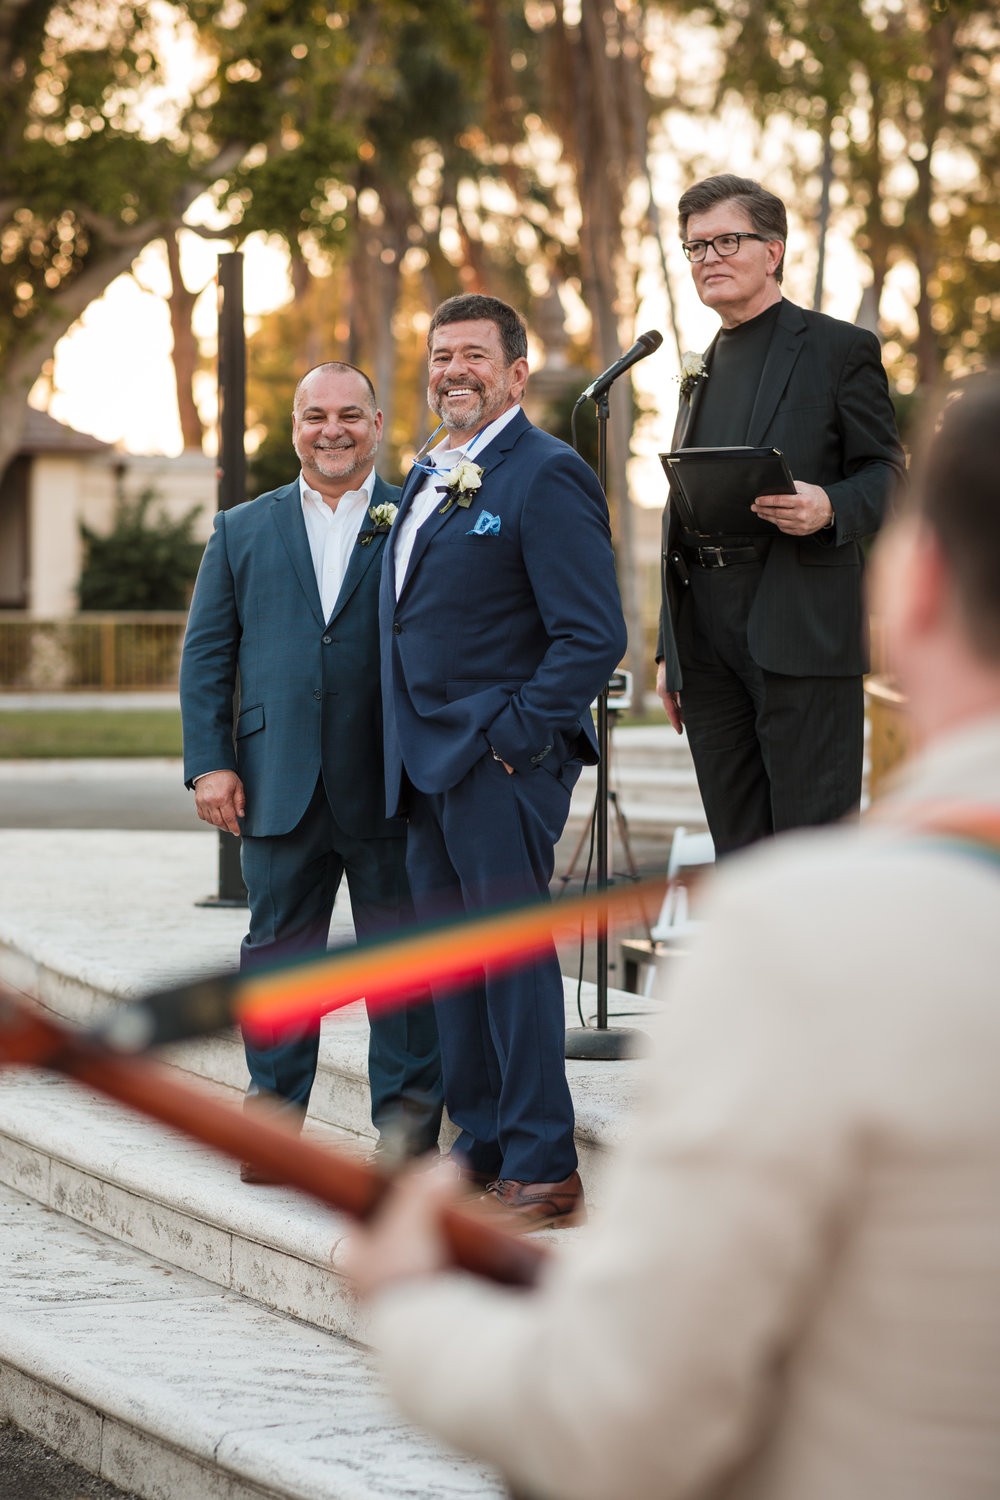 Guest starts a Madonna sing a long during the first same sex wedding ceremony at the Hialeah Racing Track and Casino in Miami Florida